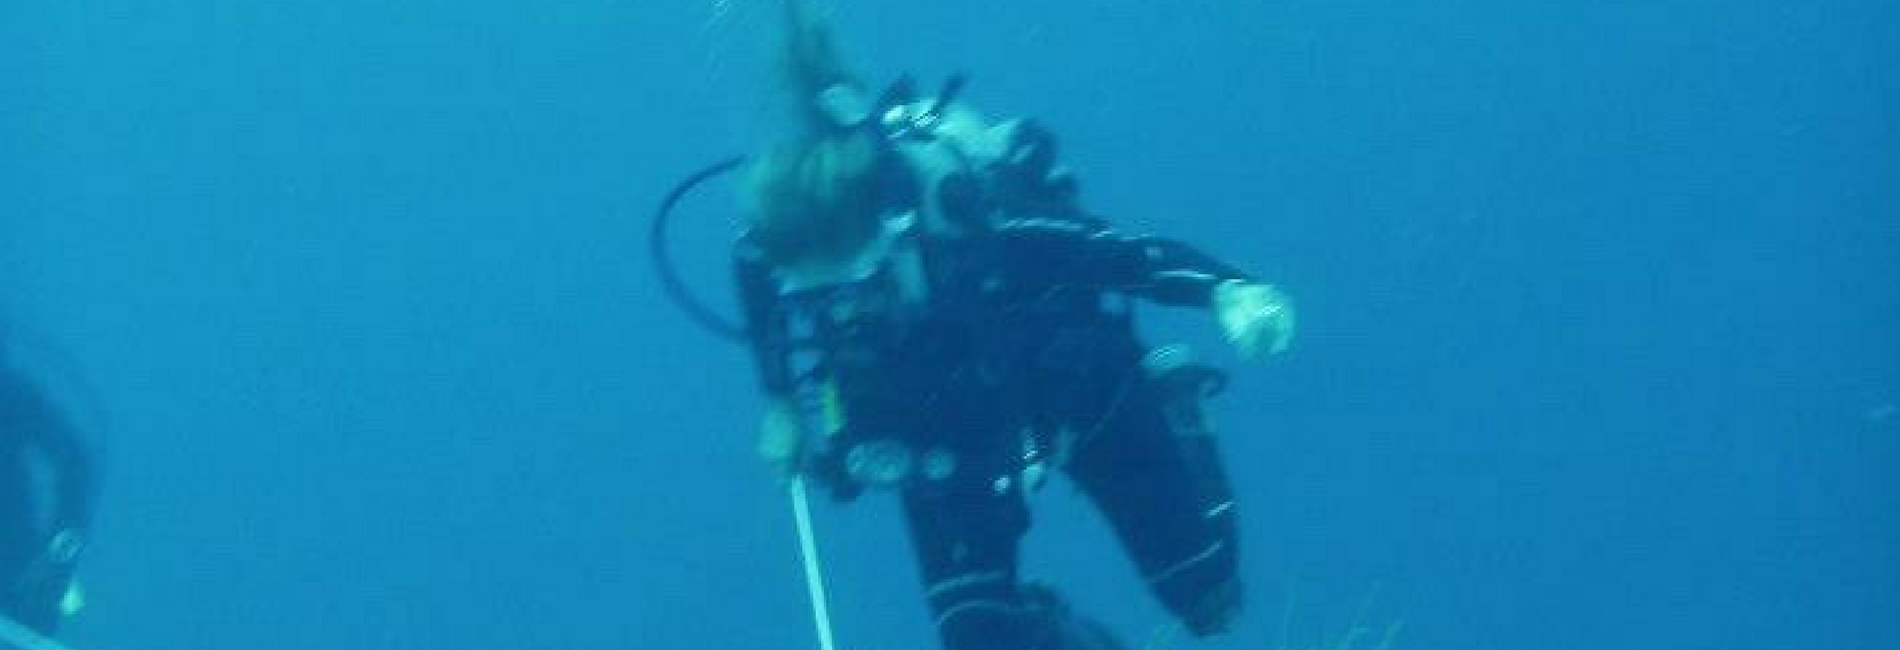 Standard swscd   scuba diving  1   activity banner image    1900x650